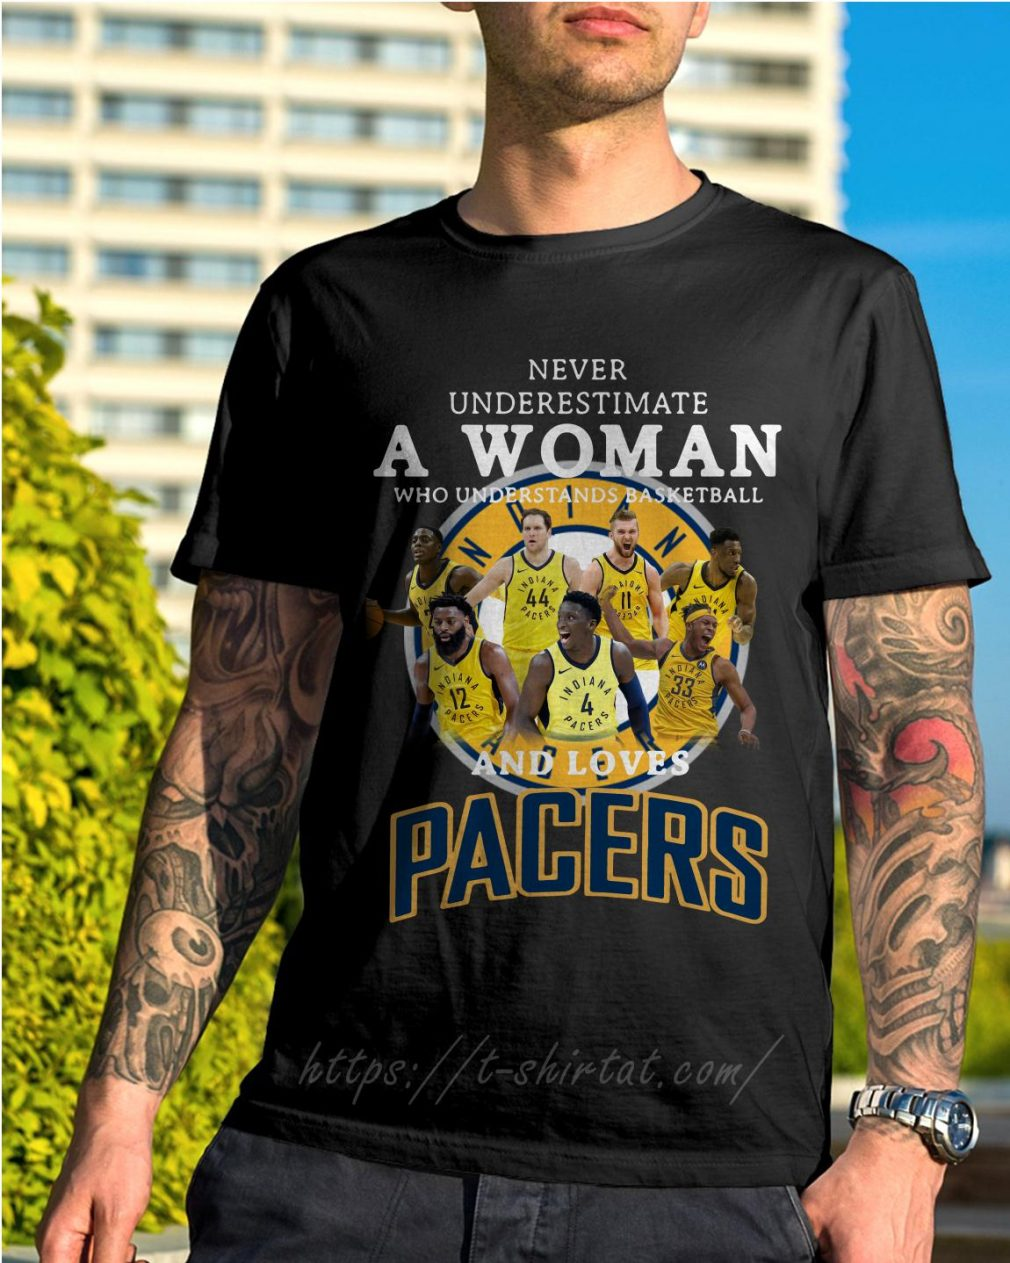 A woman who understands basketball and loves Pacers shirt